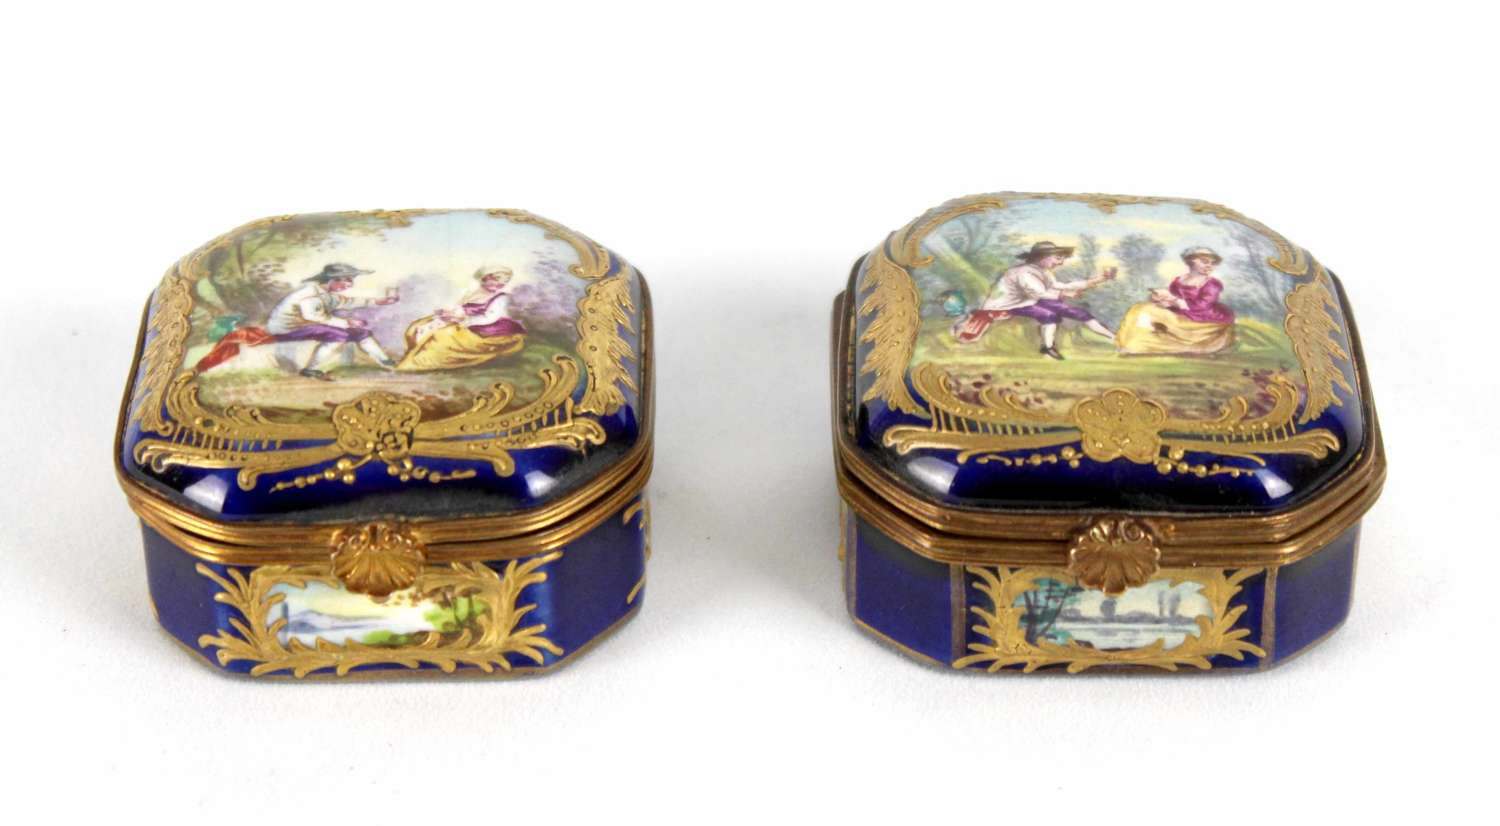 A Pair Of Late 19th C. Sevres Ceramic Canted Square Small Boxes